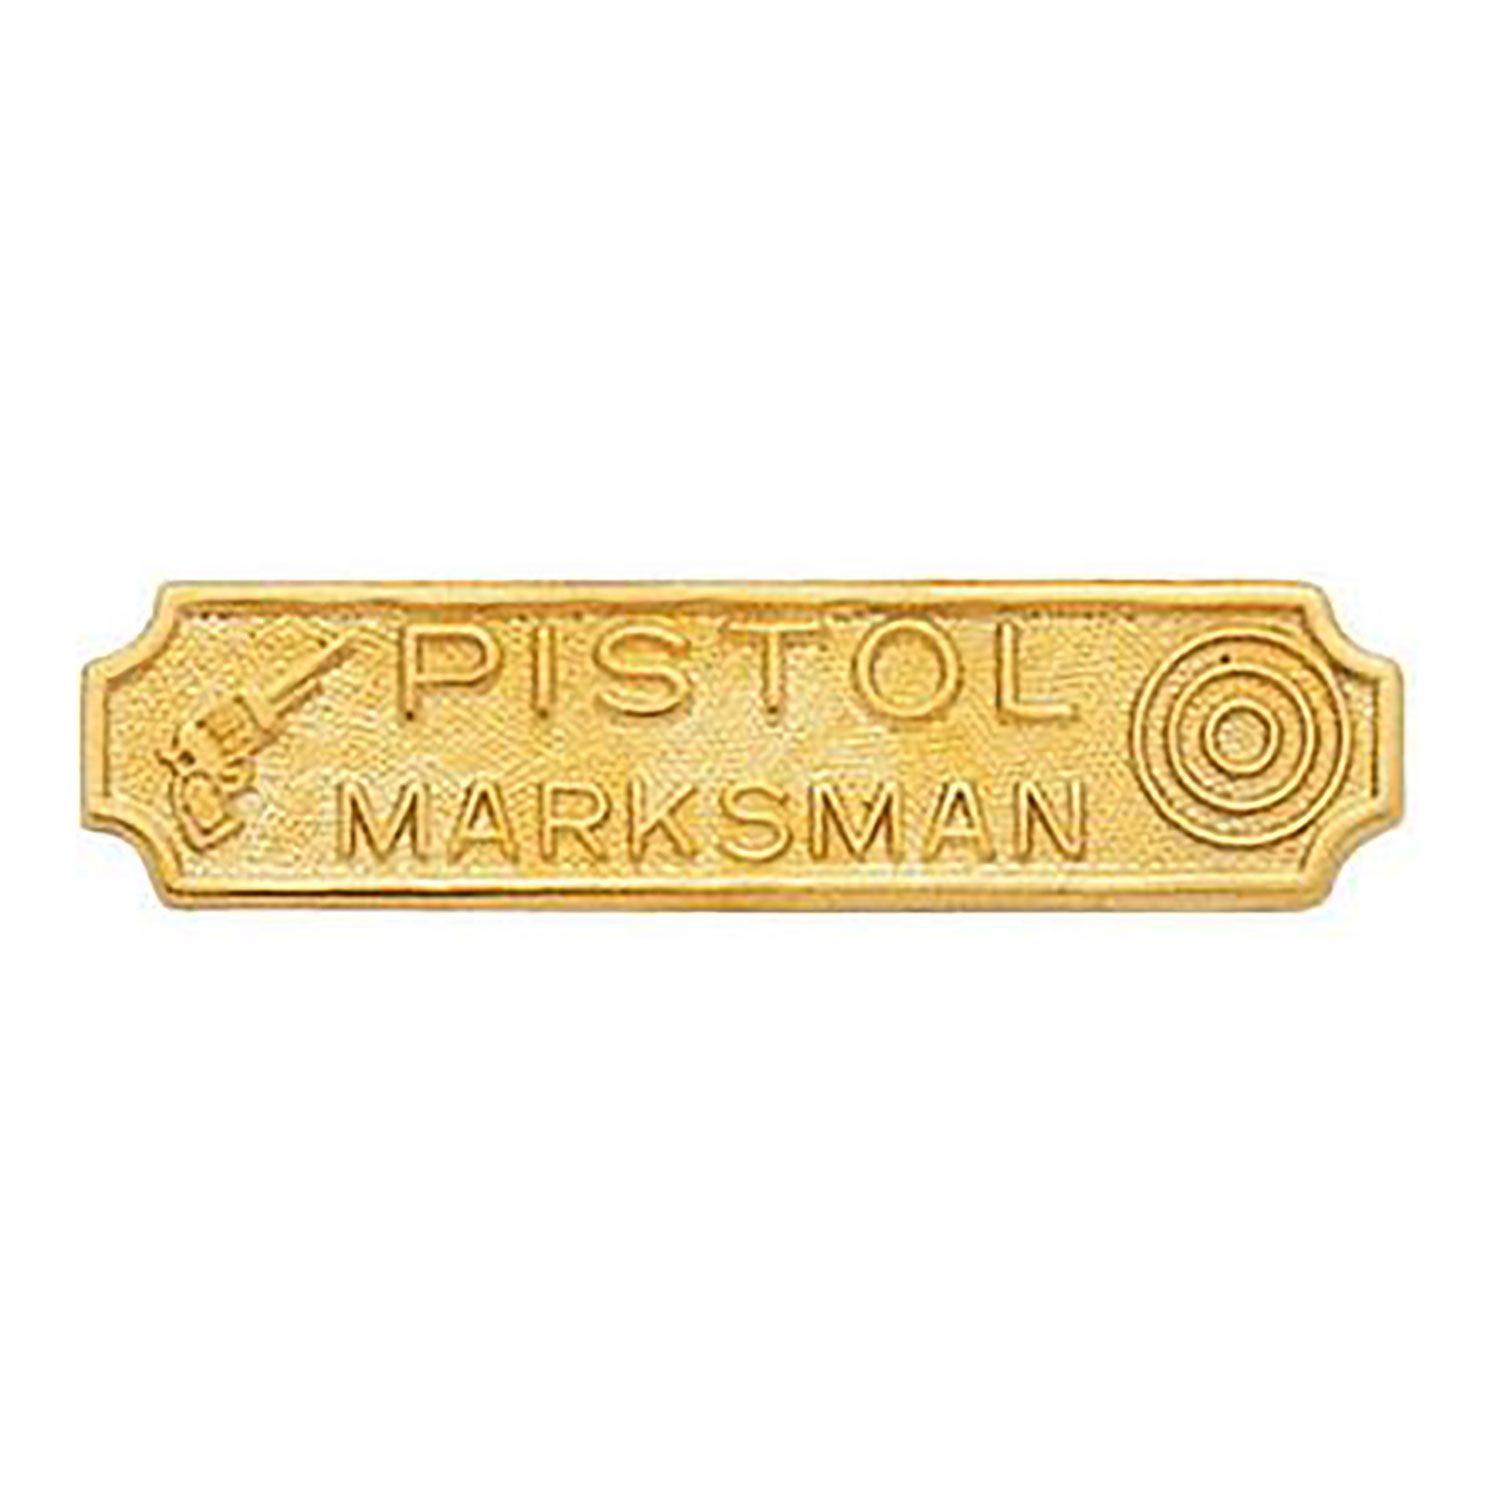 Smith & Warren Pistol Marksman